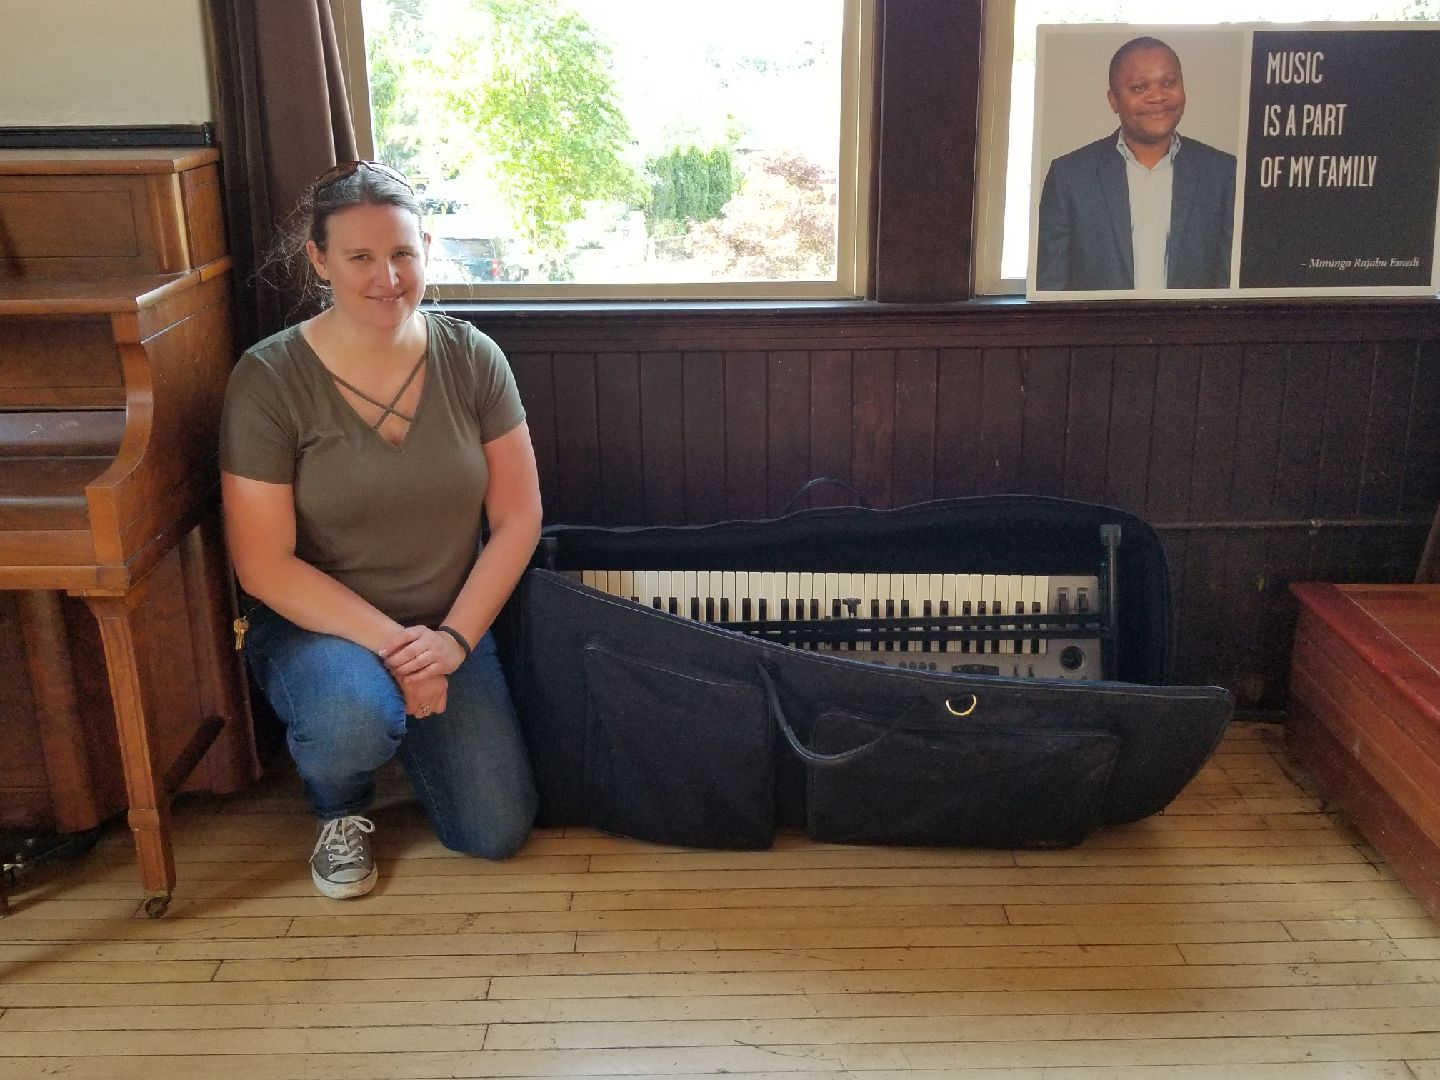 Immigrant & Refugee Music Camp Instrument Drive and Fundraiser - June 6, 2018. Hosted by Portland Meet Portland in partnership with XRAY.fm and the Oregon Public House. Click here for photos.